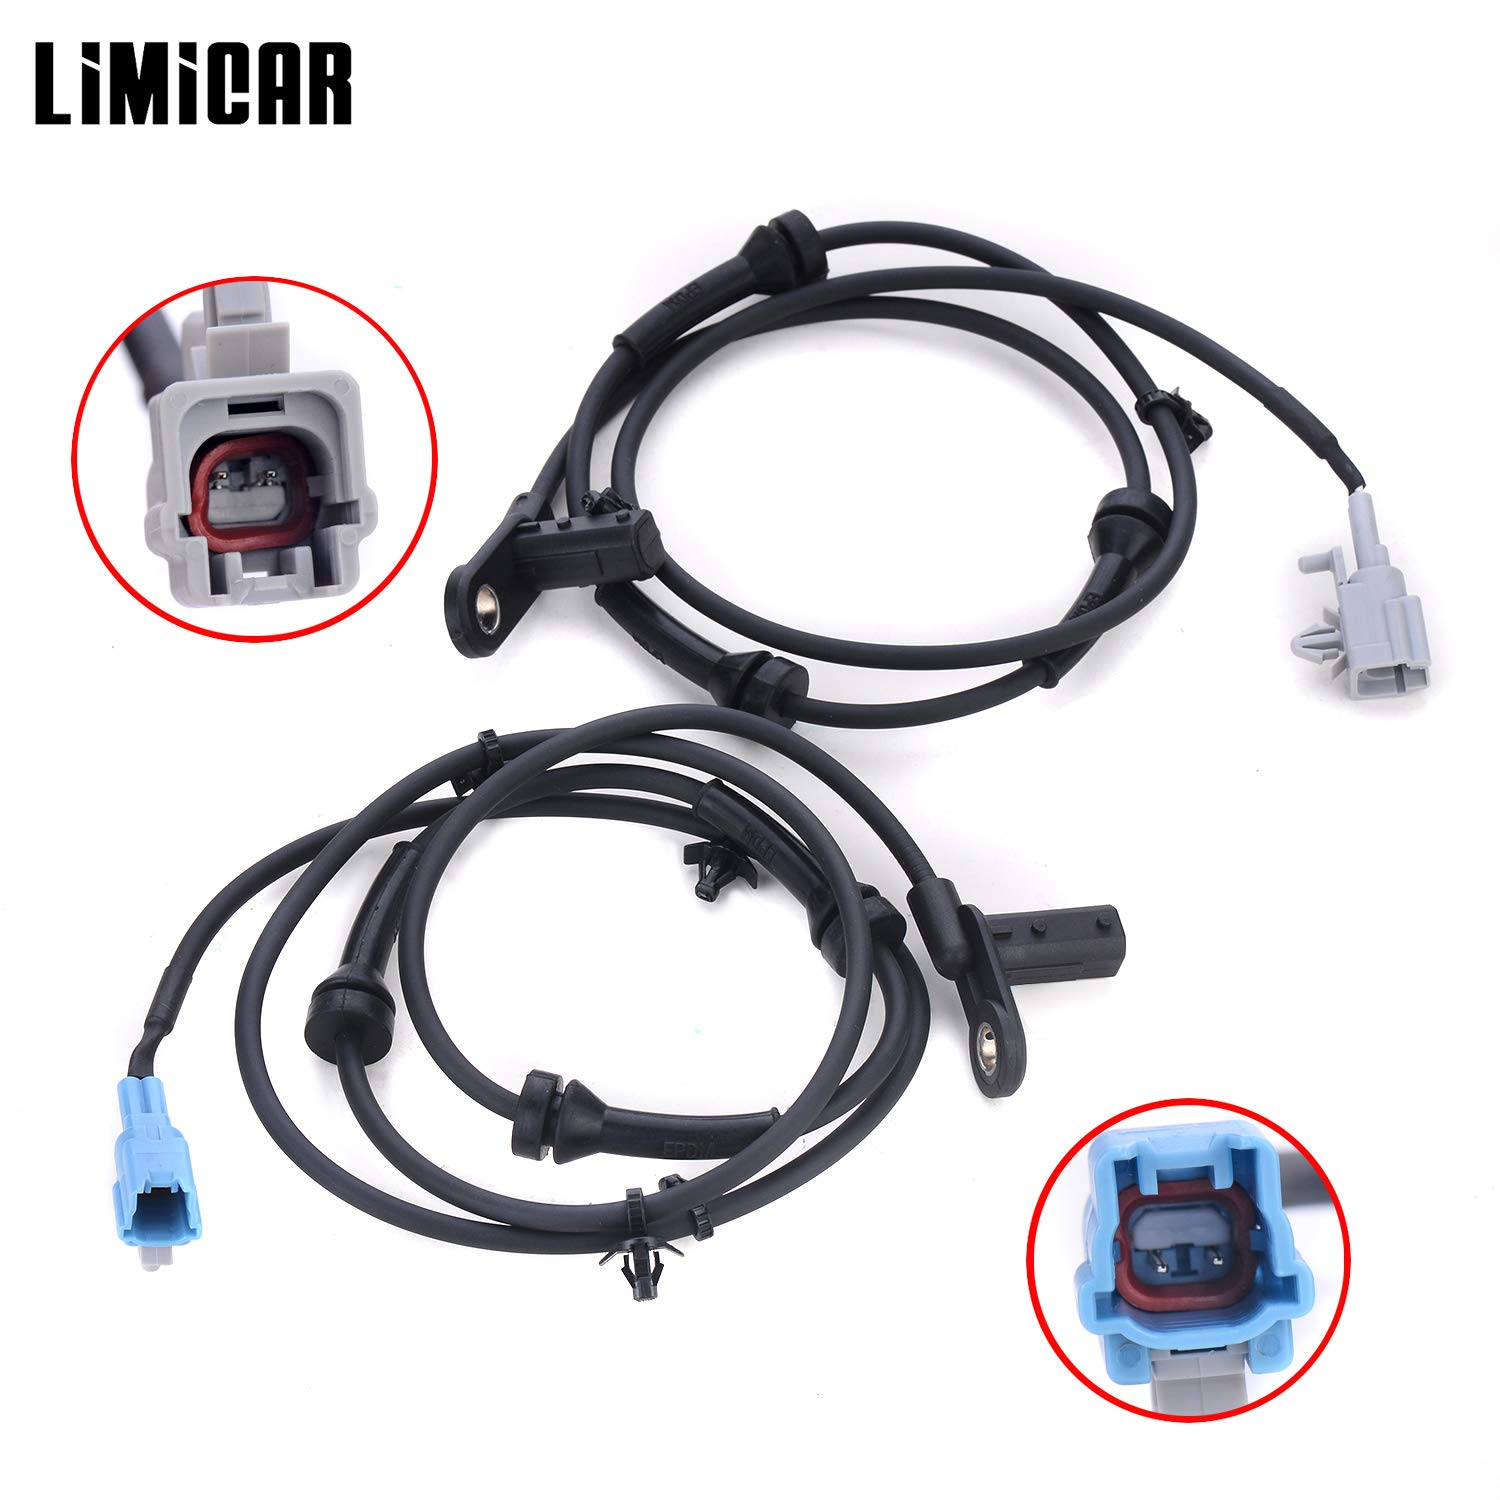 LIMICAR 2PCS Rear Left /& Right ABS Wheel Speed Sensor ALS348 ALS349 47900-7Y000 1802-308879 Compatible w// 2004 2005 2006 2007 2008 Nissan Maxima 3.5L